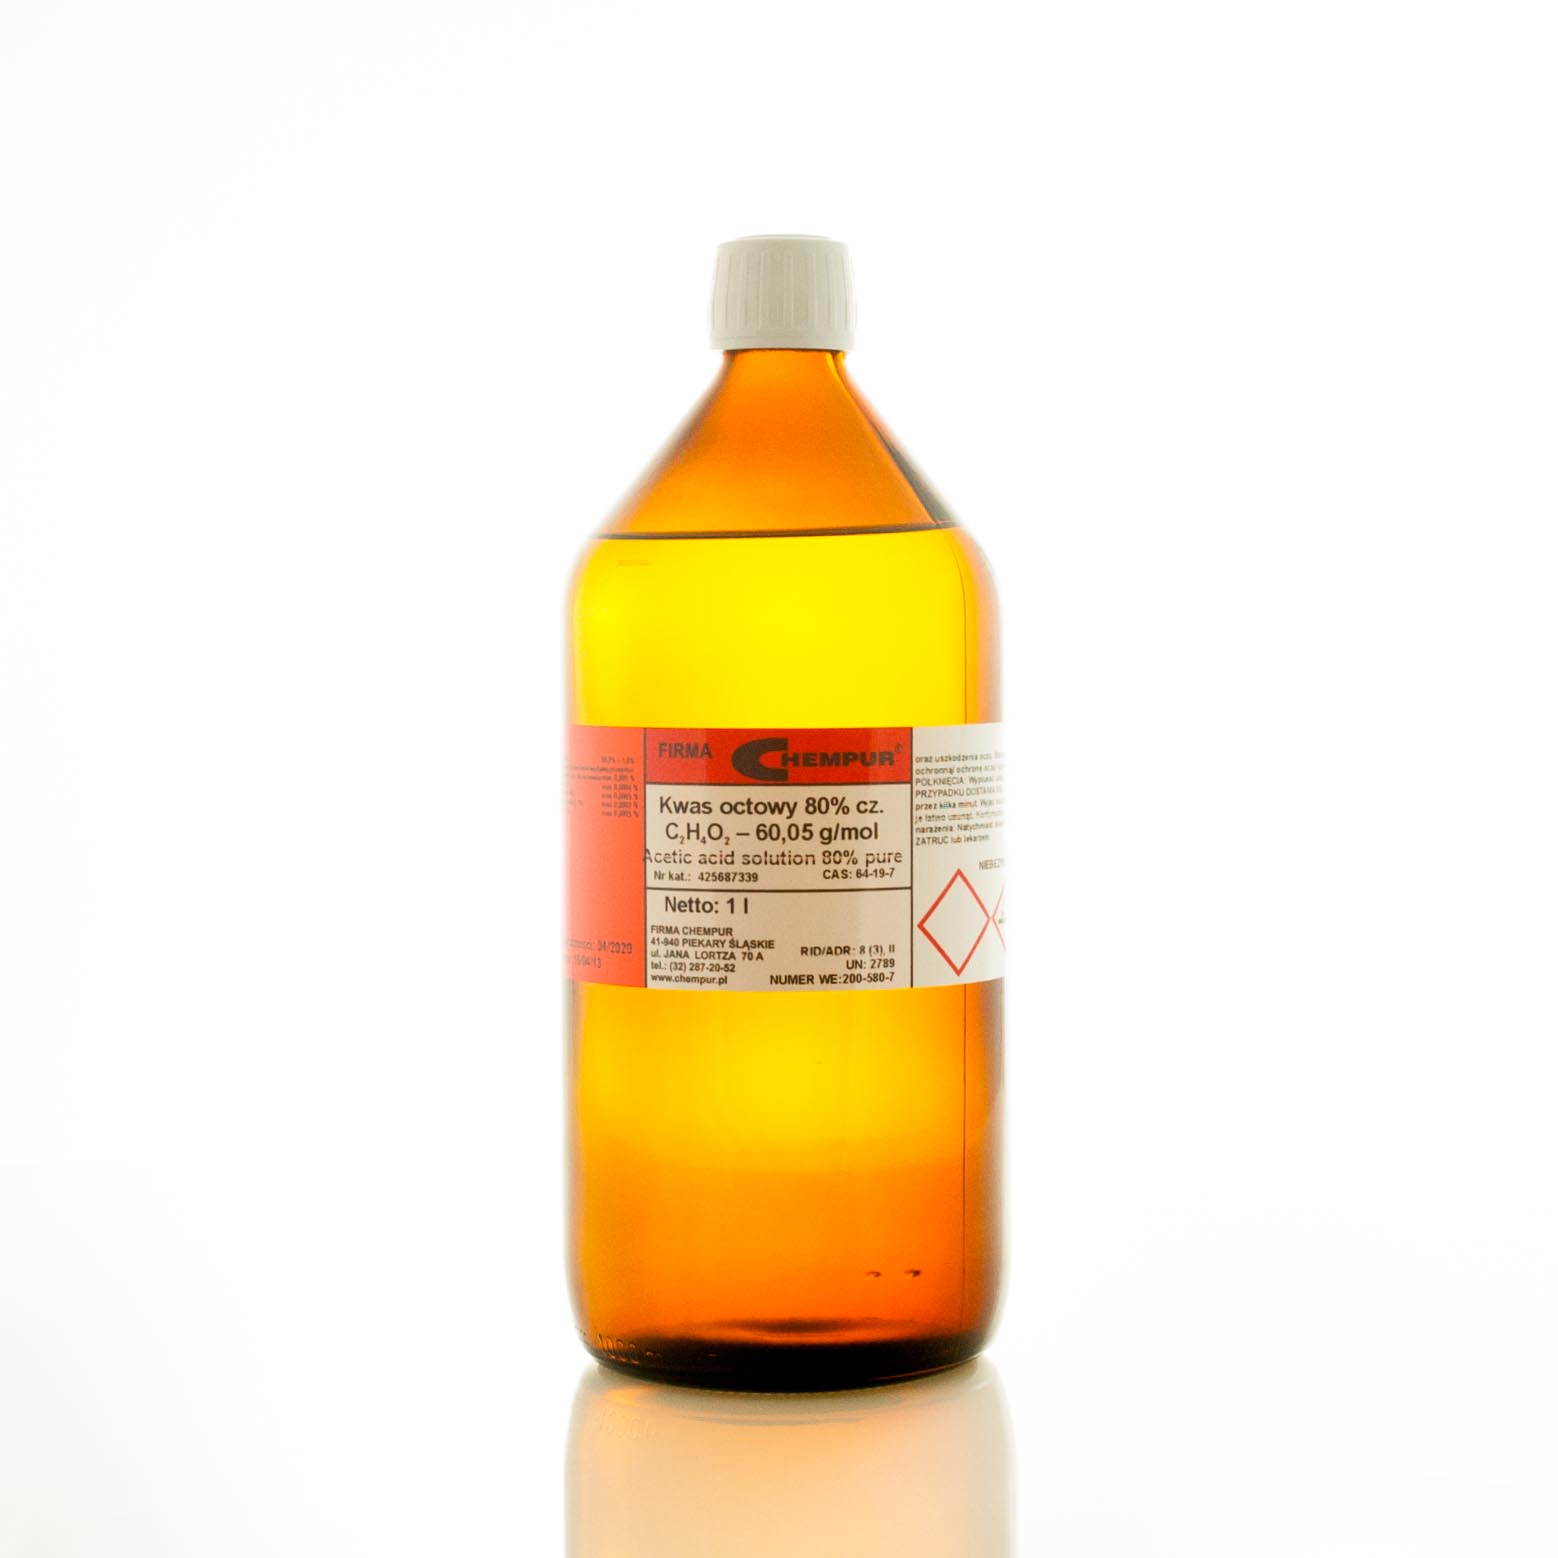 ACETIC ACID SOLUTION 80%